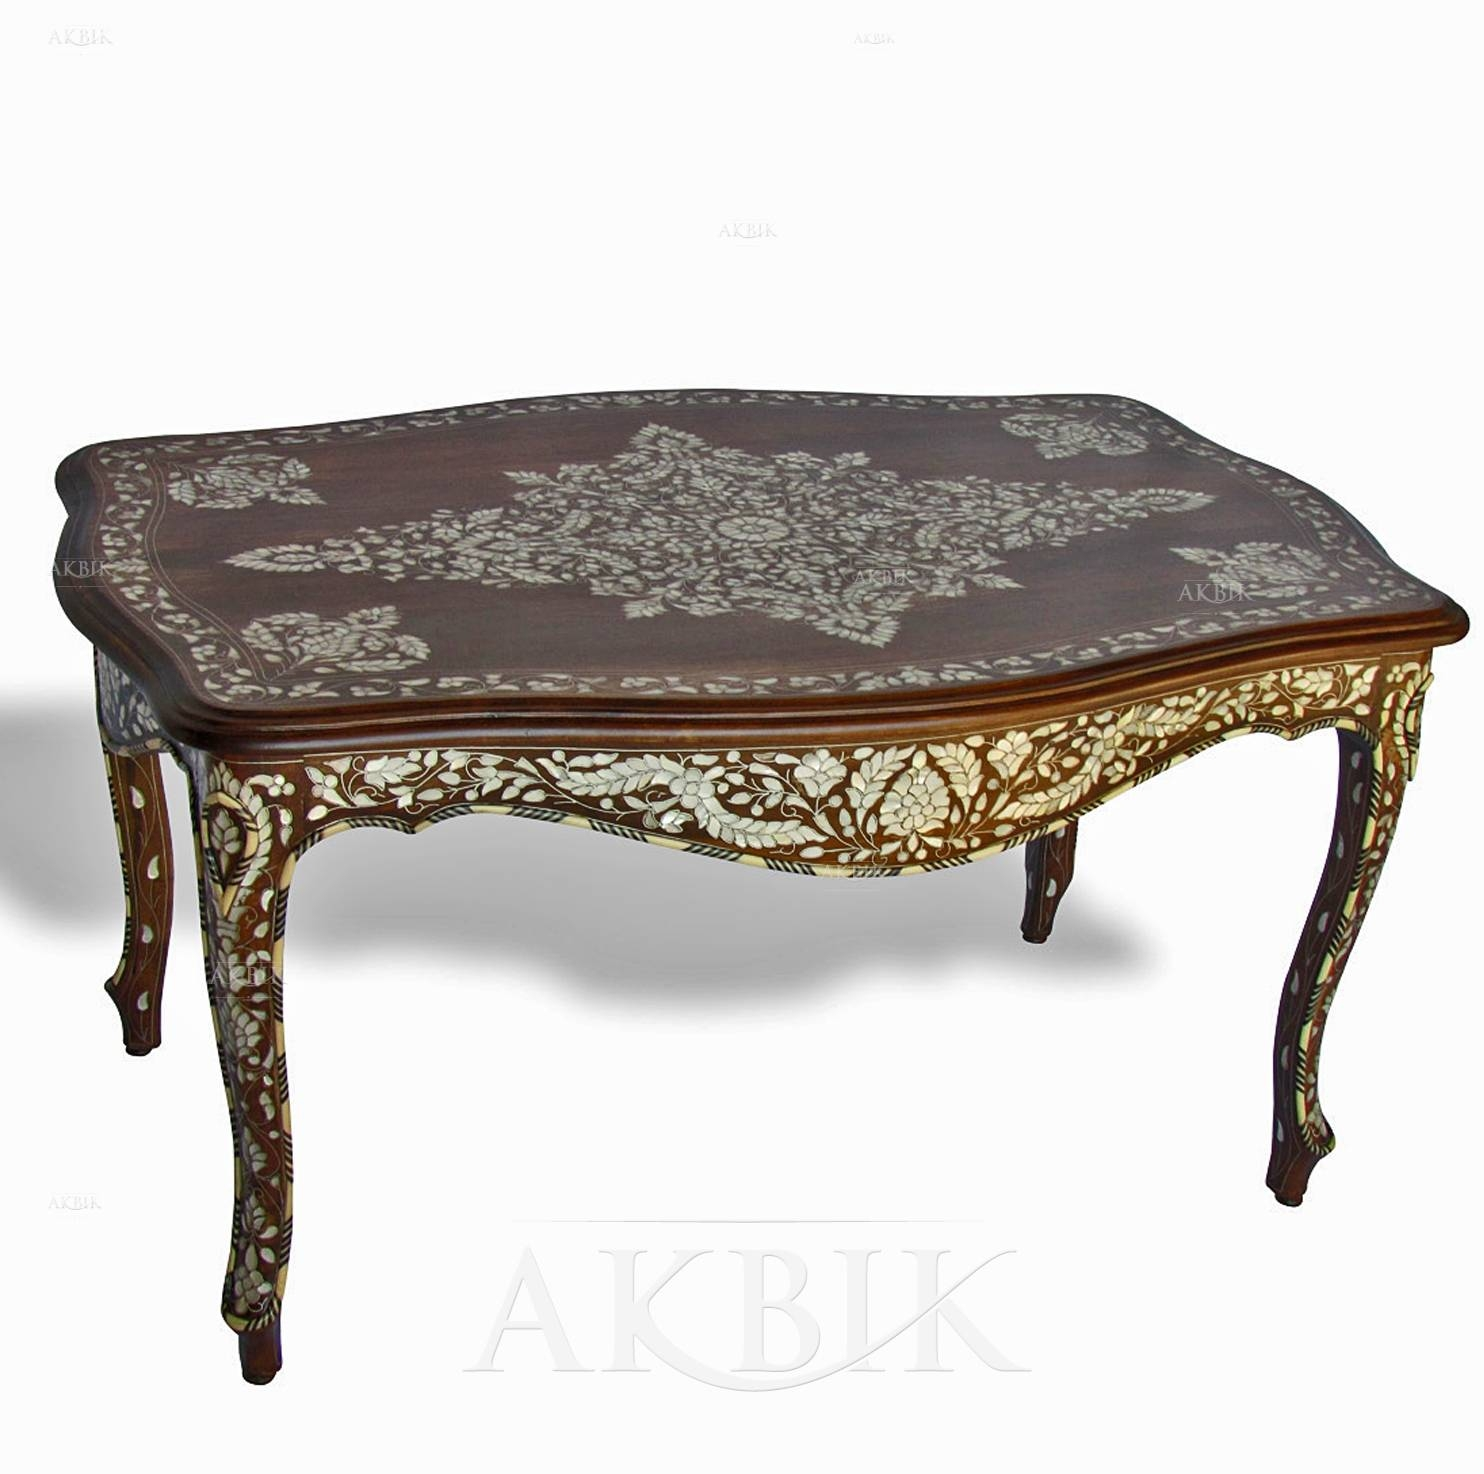 Mediterranean, Levantine & Syrian Furniture Inlaid With Mother Of inside Mother of Pearl Coffee Tables (Image 18 of 30)